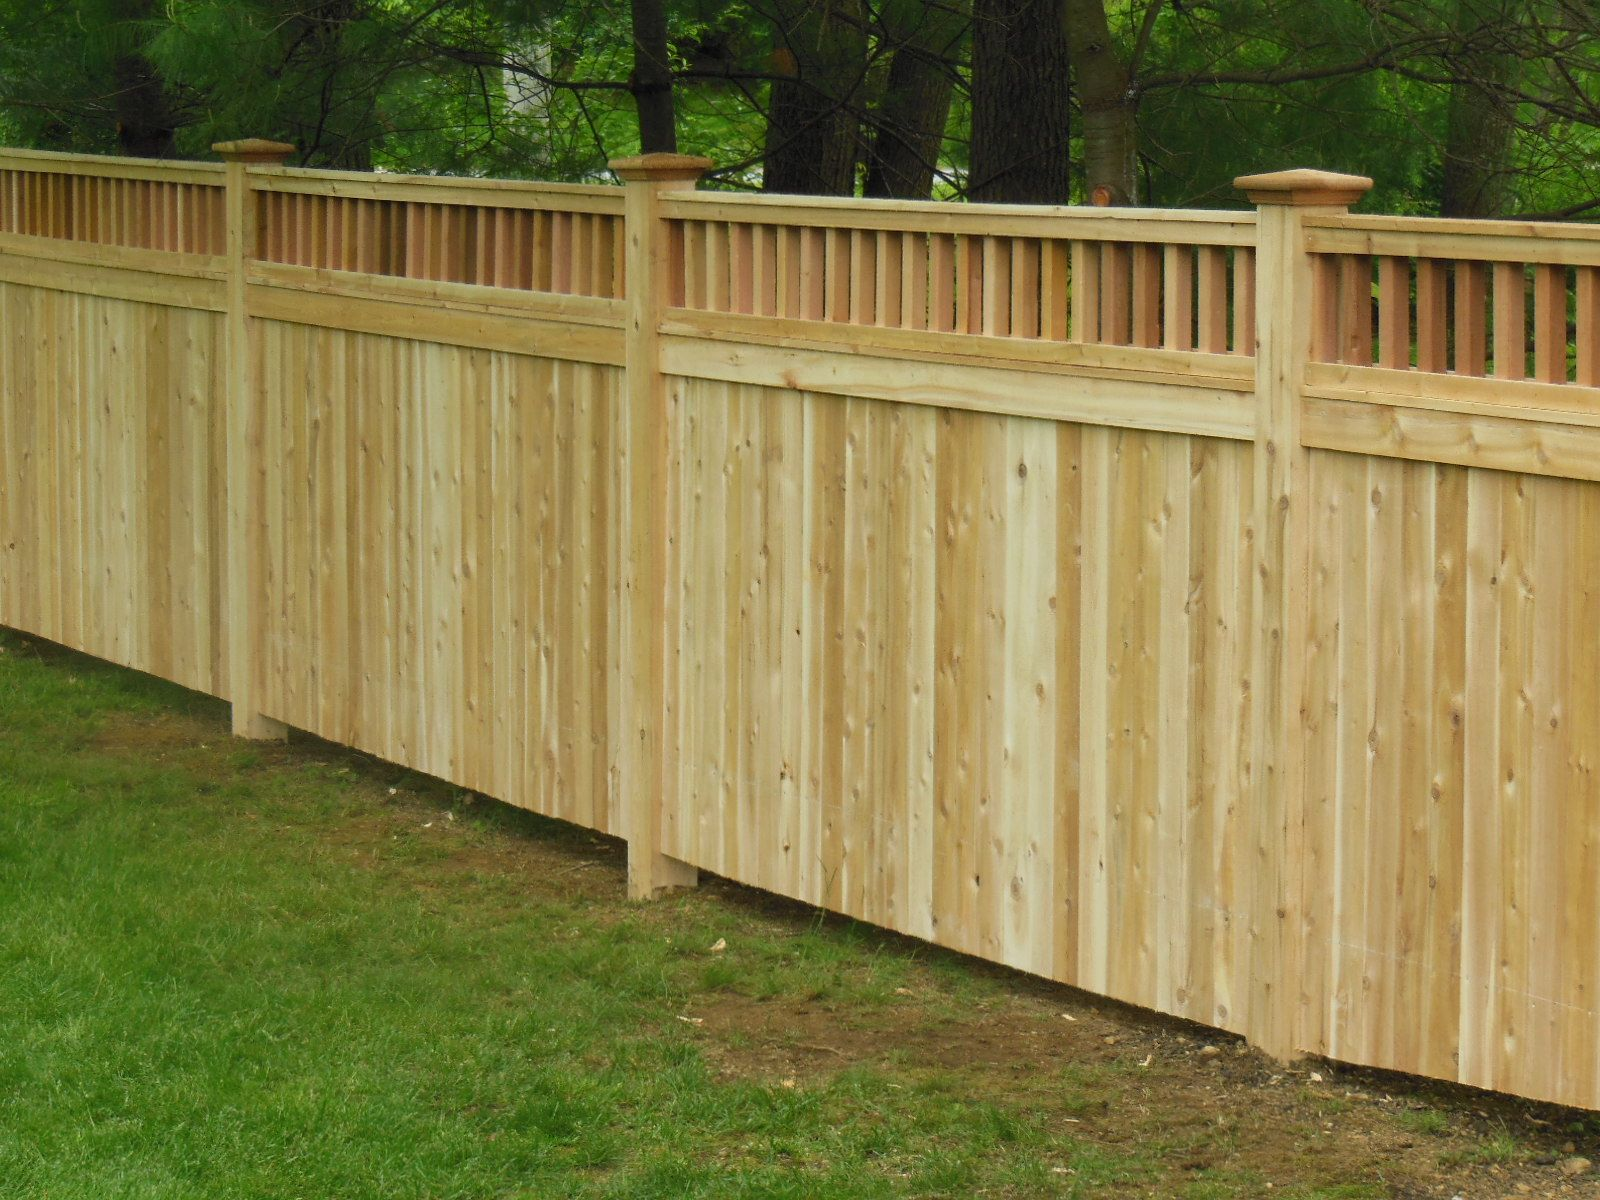 A Natural Wood Cedar Privacy Fence Featuring Tongue And